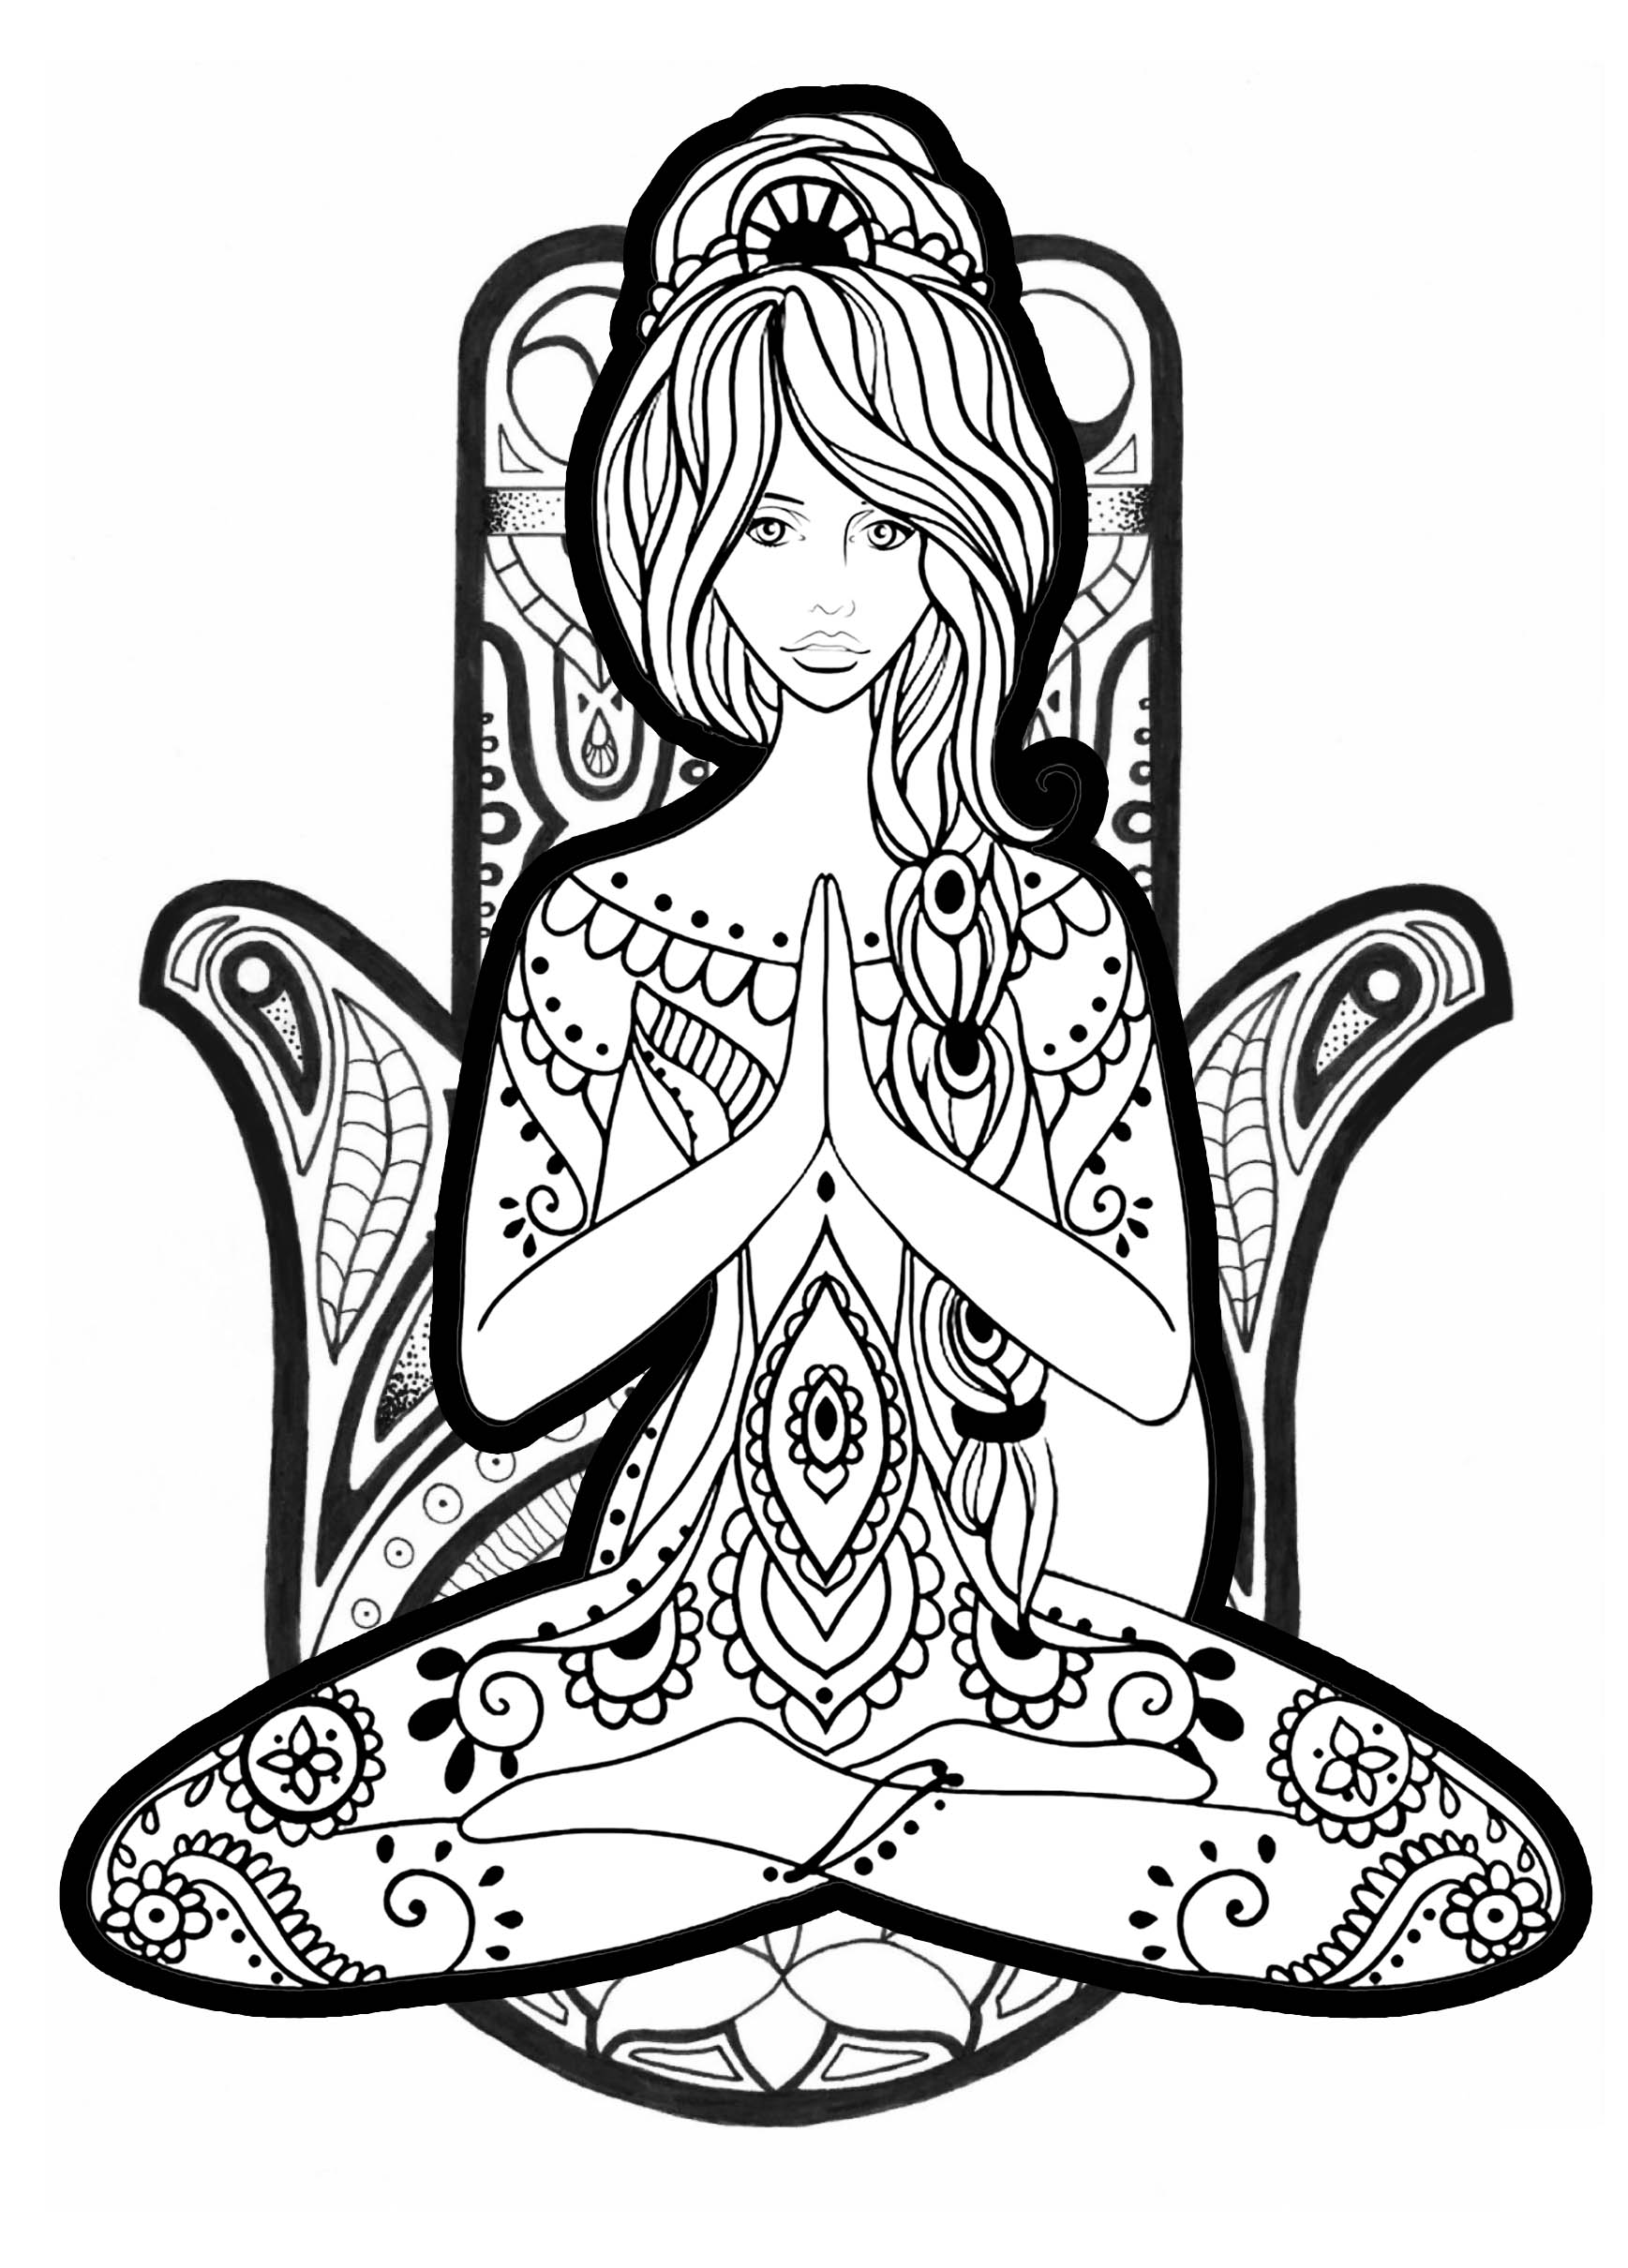 nos coloriages - Coloriage Anti Stress Adulte 2